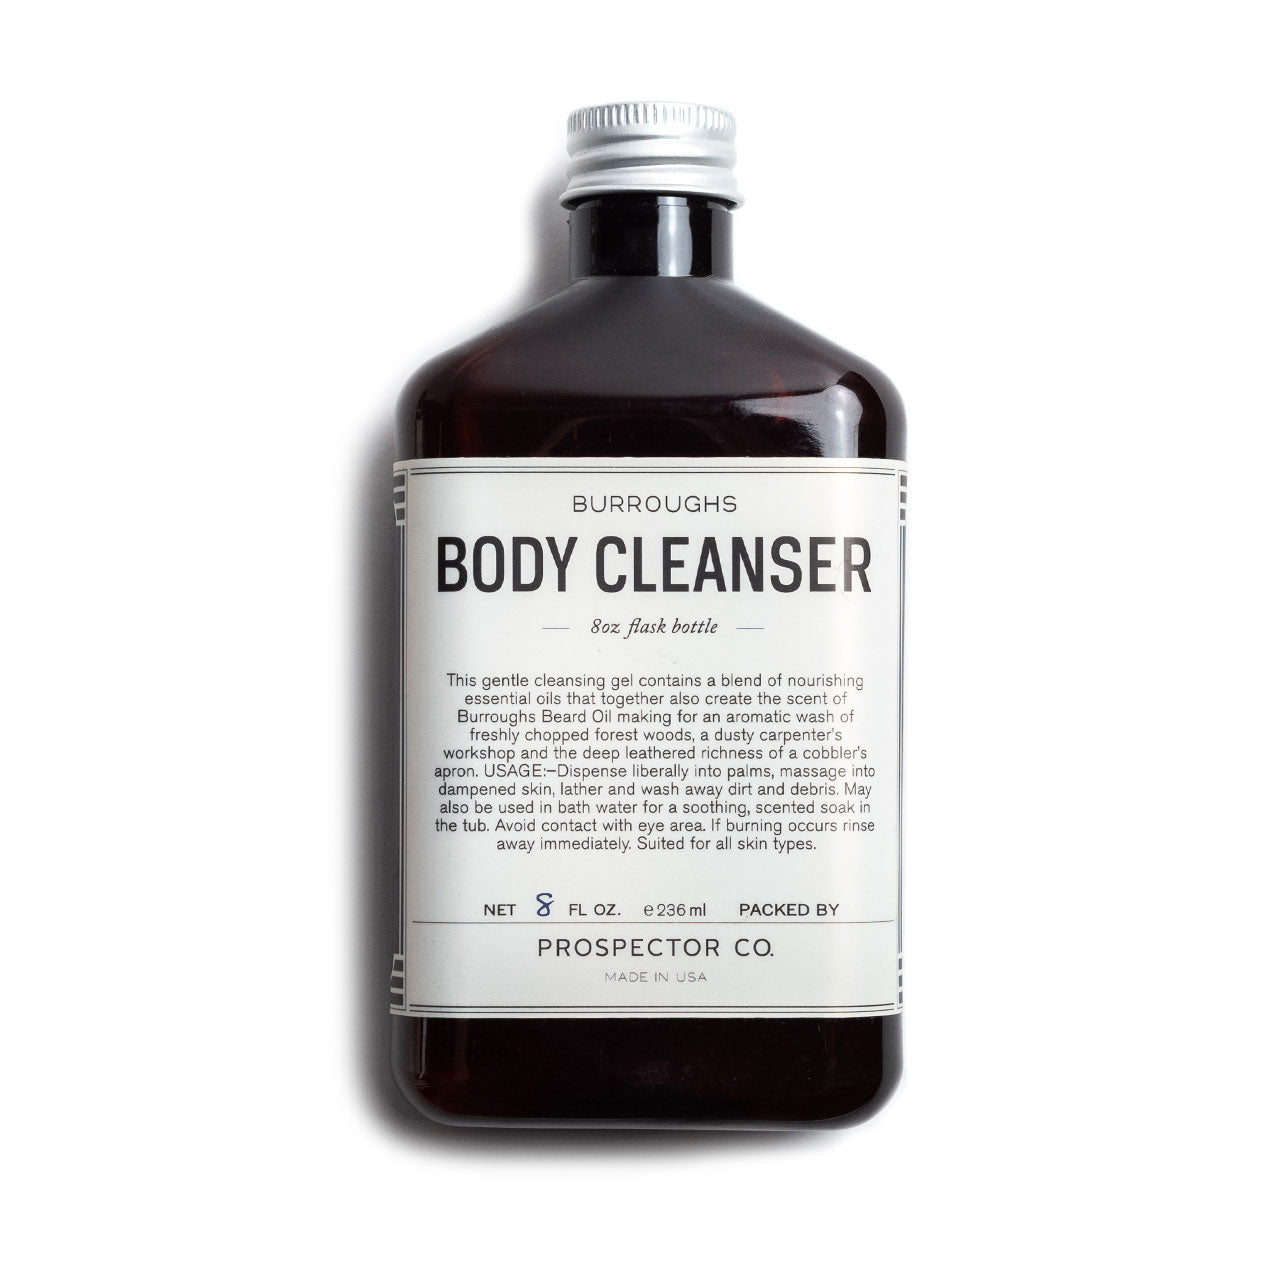 Prospector Co. Burroughs Body Cleanser